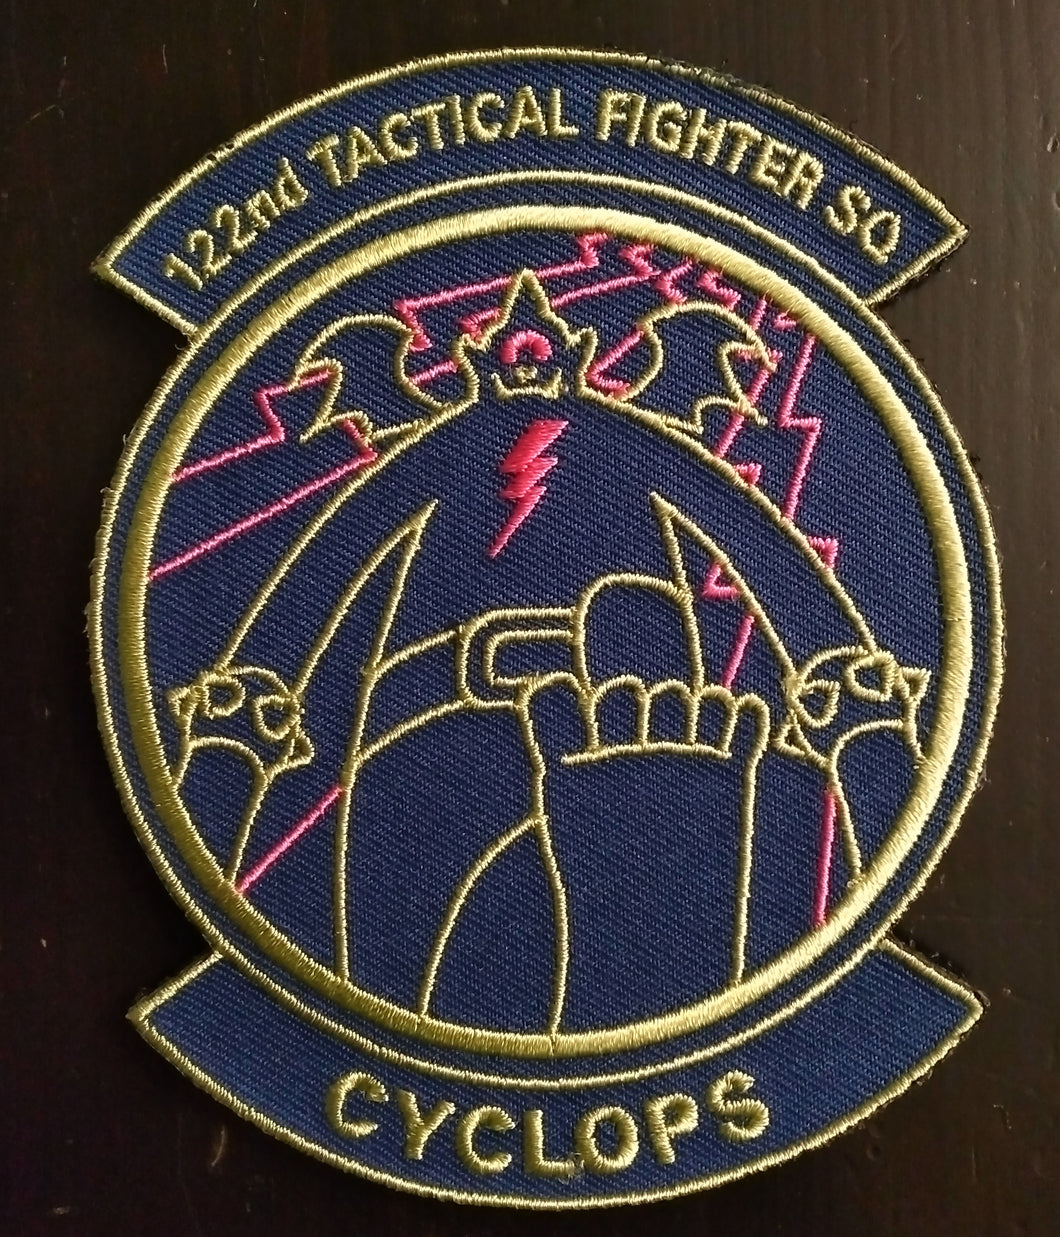 Cyclops Squadron Patch